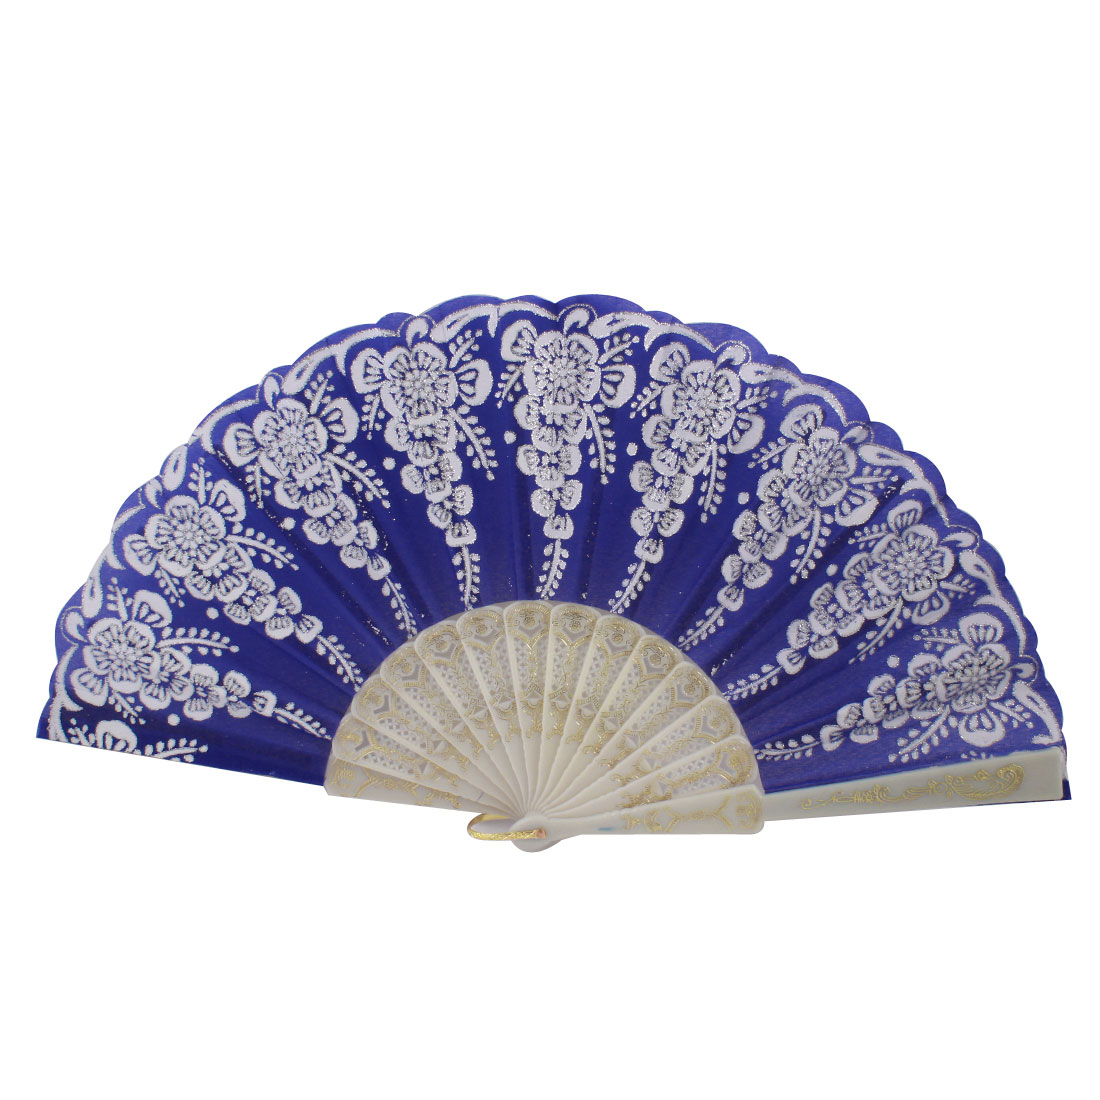 Plastic Rib Silver Tone Glittery Powder Decor Floral Pattern Folding Hand Fan Blue White